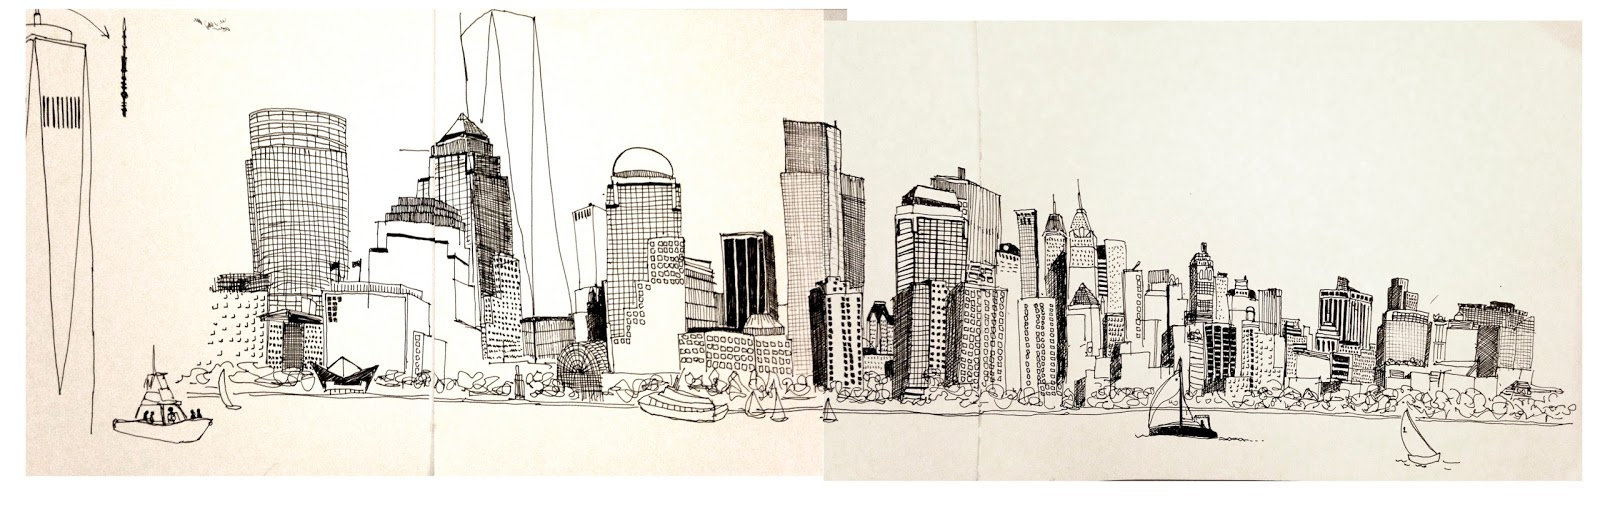 city skyline sketches - photo #29